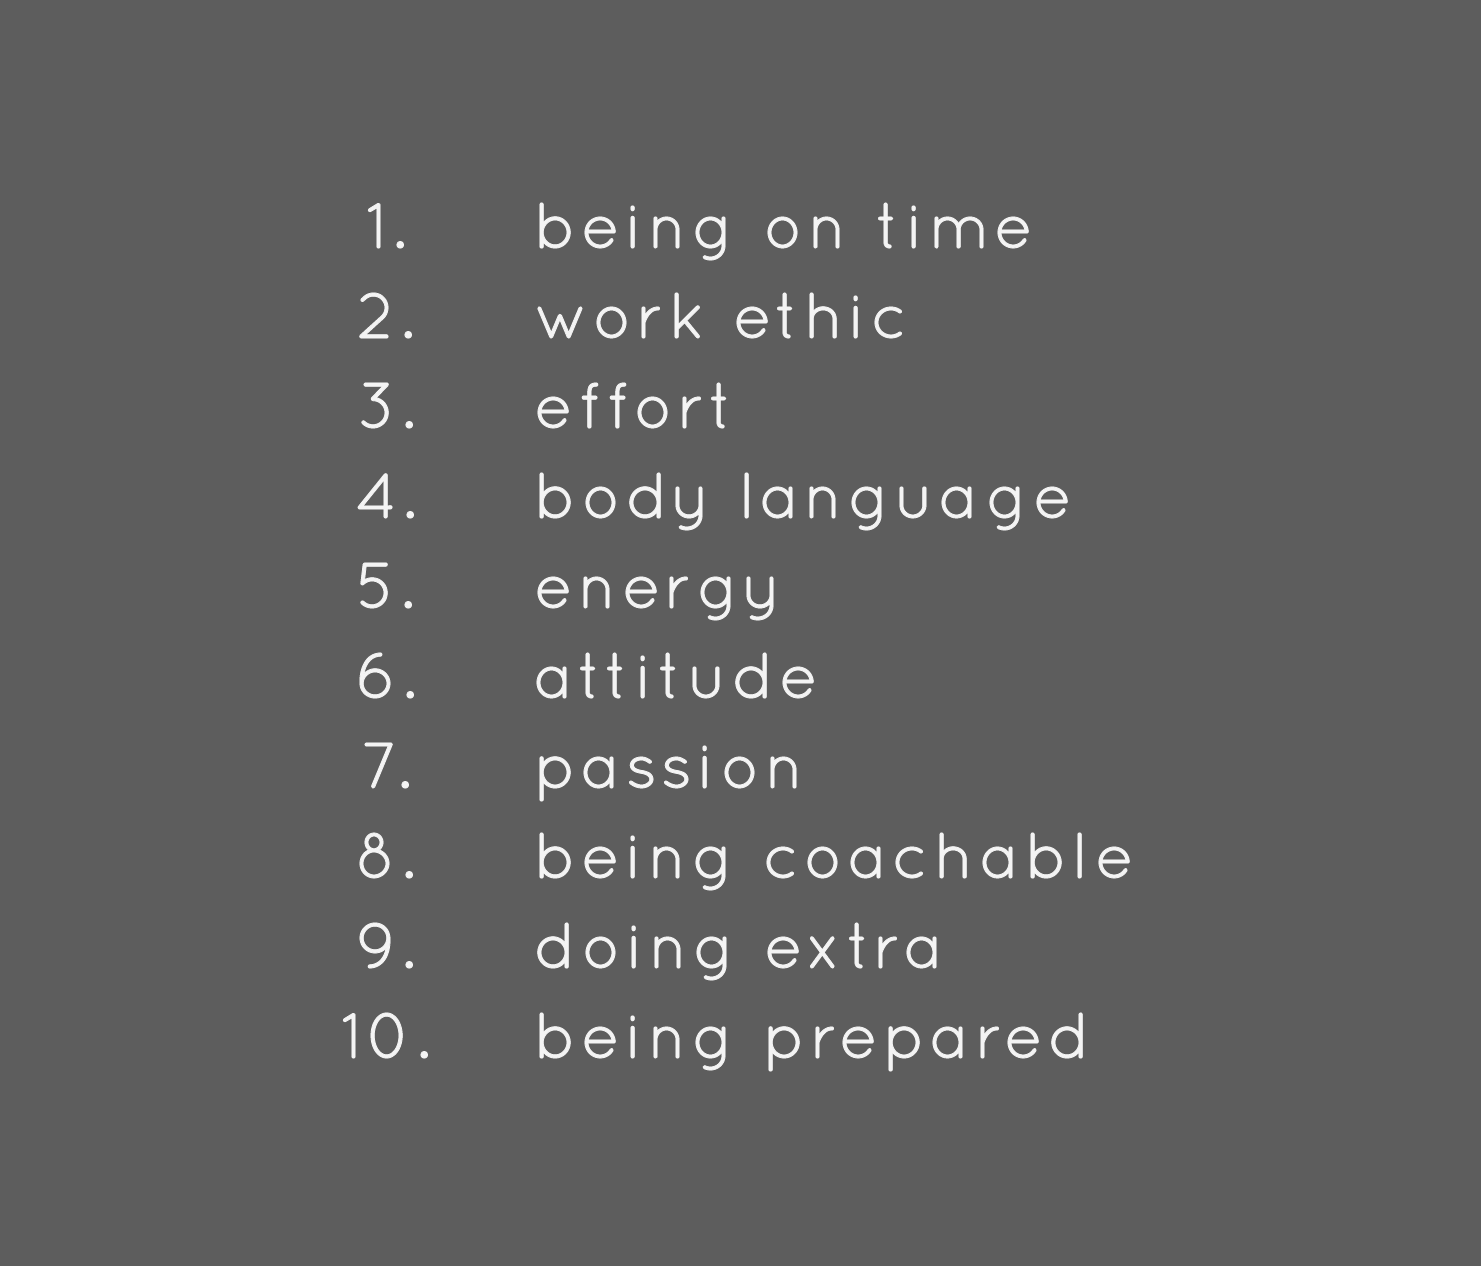 1) being on time; 2) work ethic; 3) effort; 4) body language; 5) energy; 6) attitude; 7) passion; 8) being coachable; 9) doing extra; 10) being prepared;